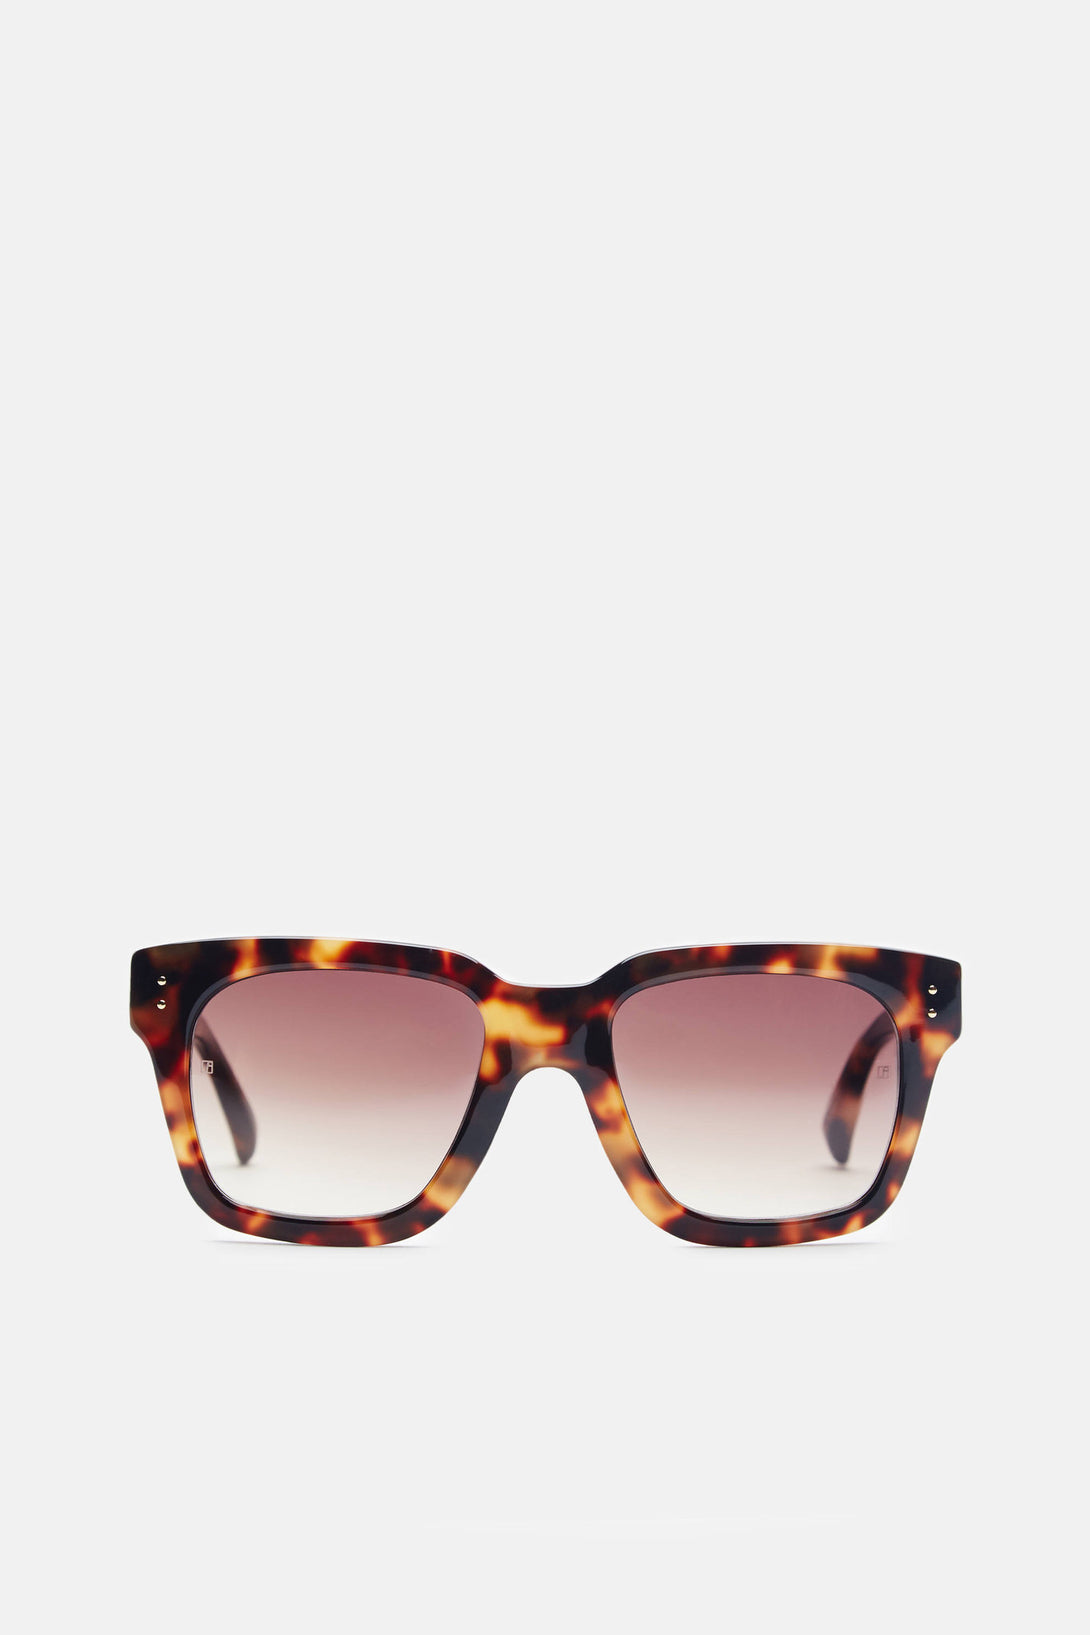 Iconic D-Frame Sunglasses - Tortoise Shell